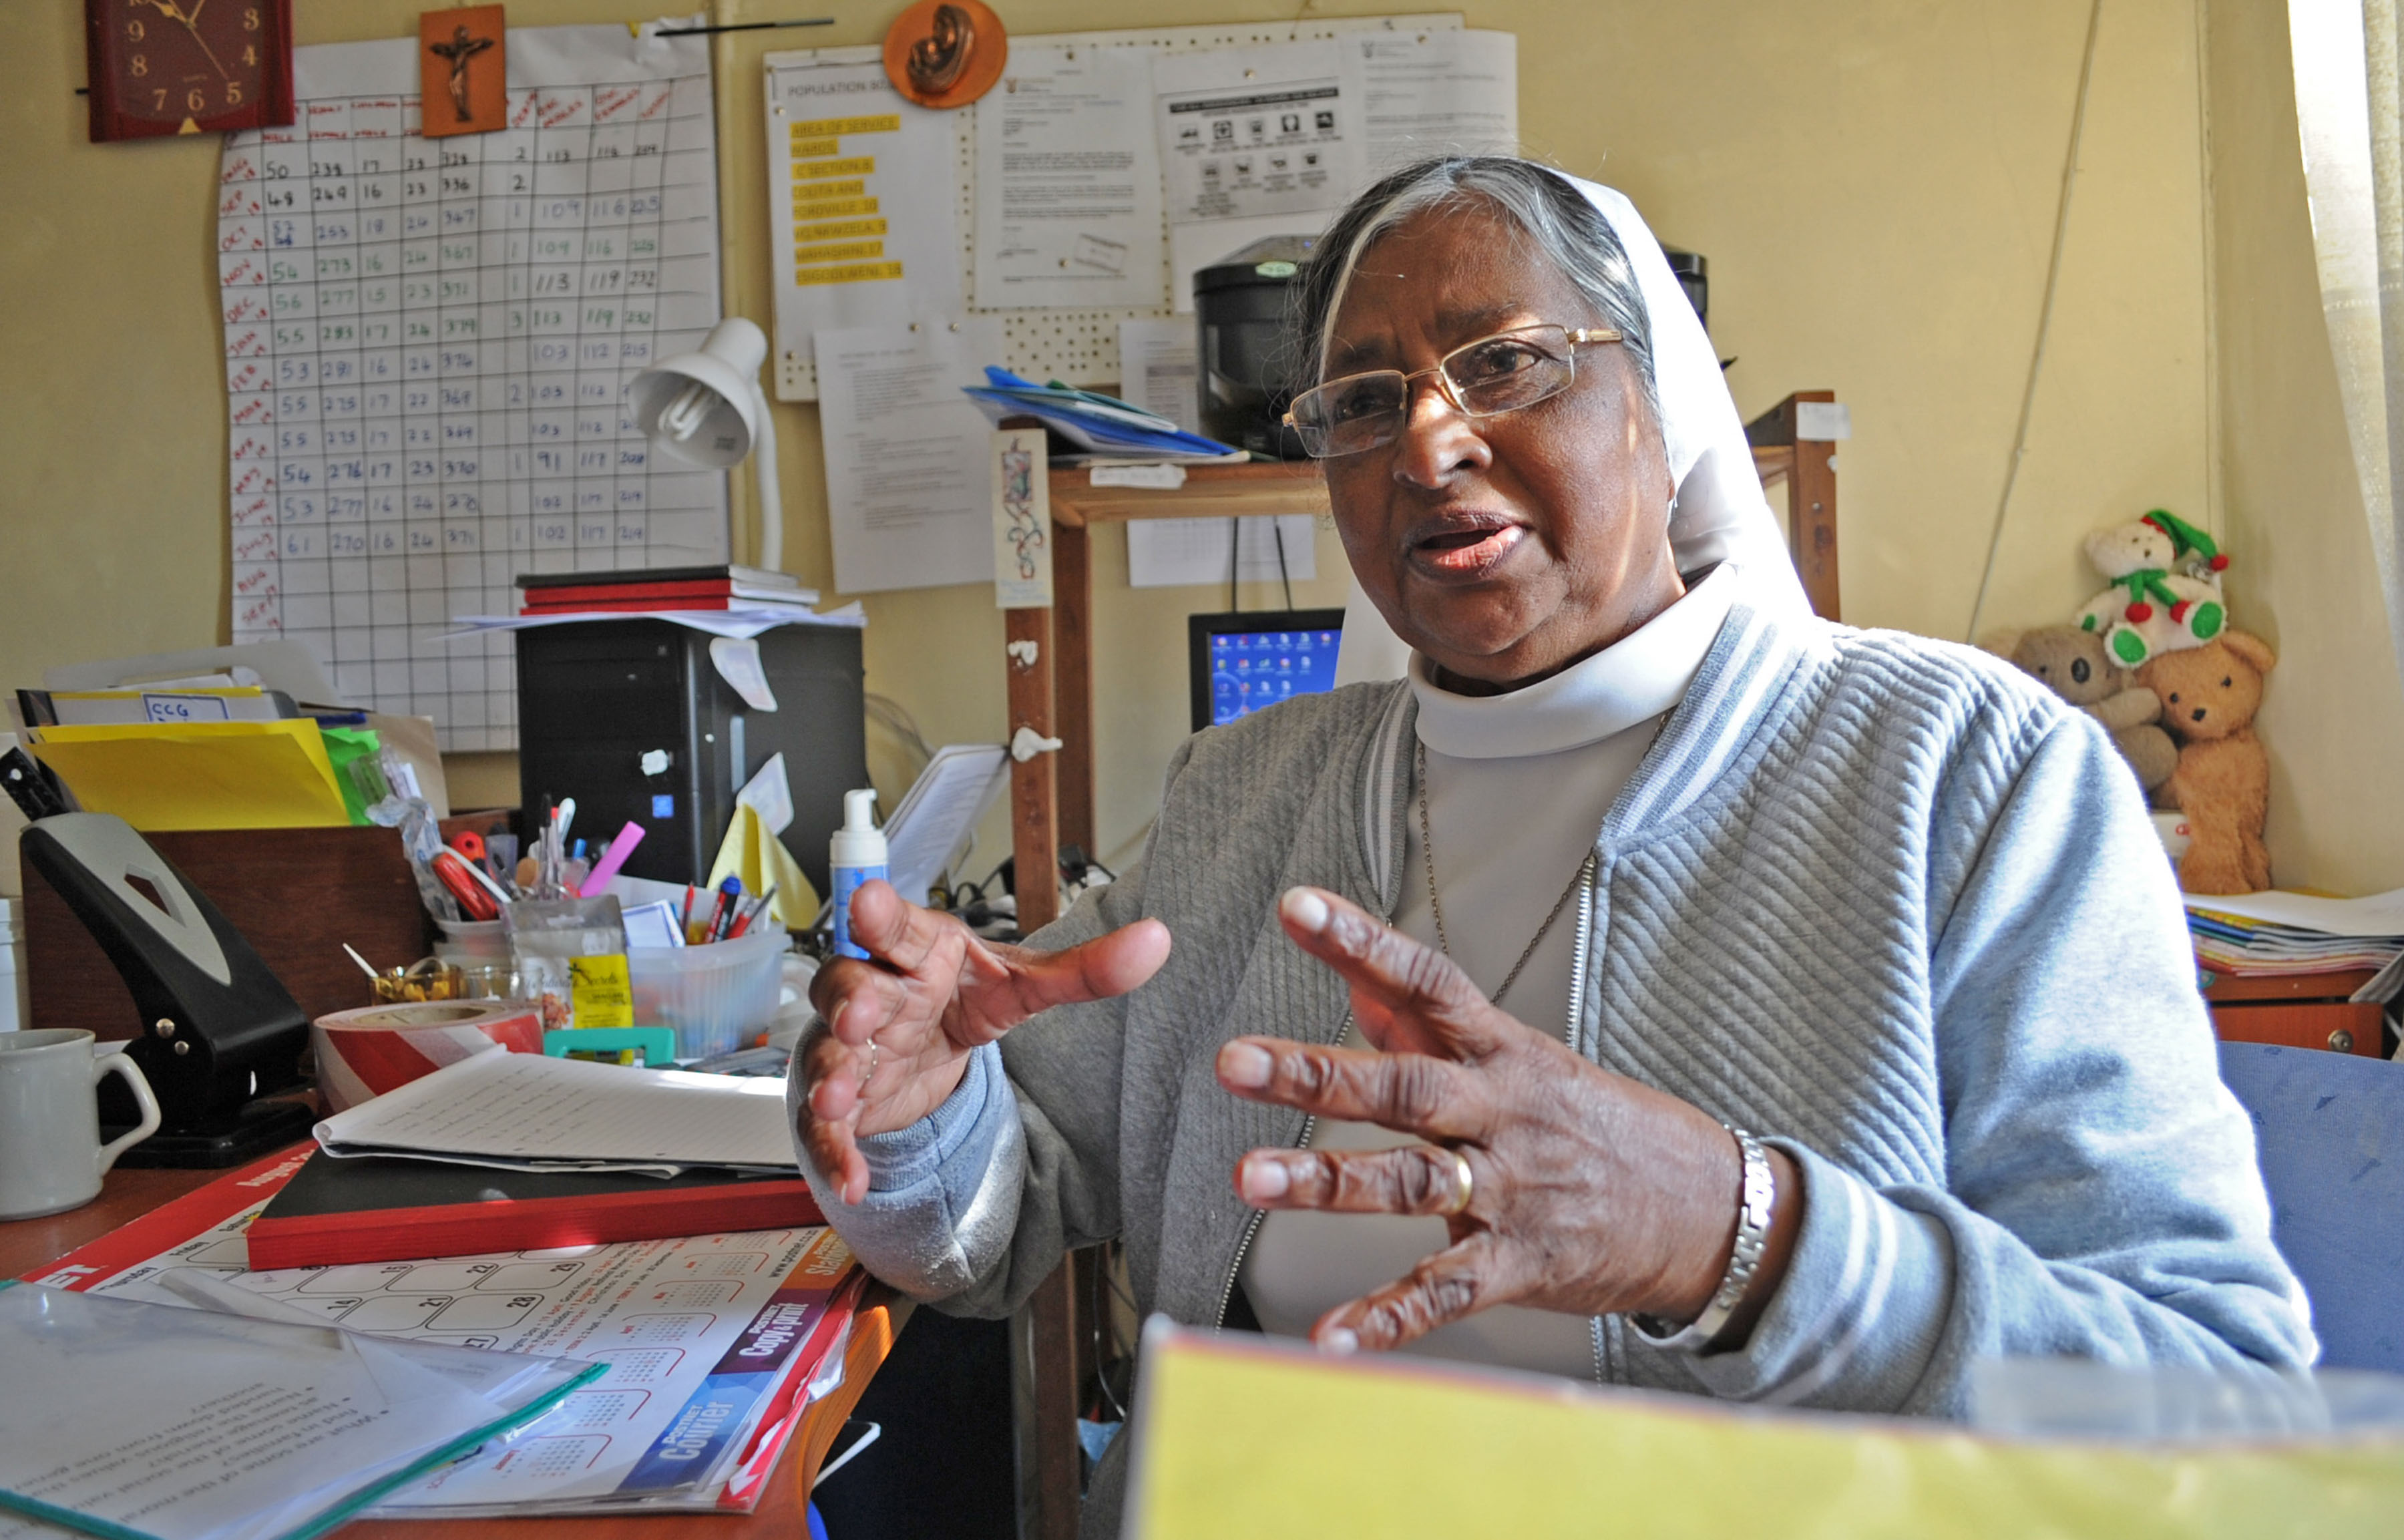 7 August 2019: Sister Maureen Aron feeds more than 40 Estcourt residents each day through the Ithembalethu Outreach Project she runs with other nuns and volunteers.